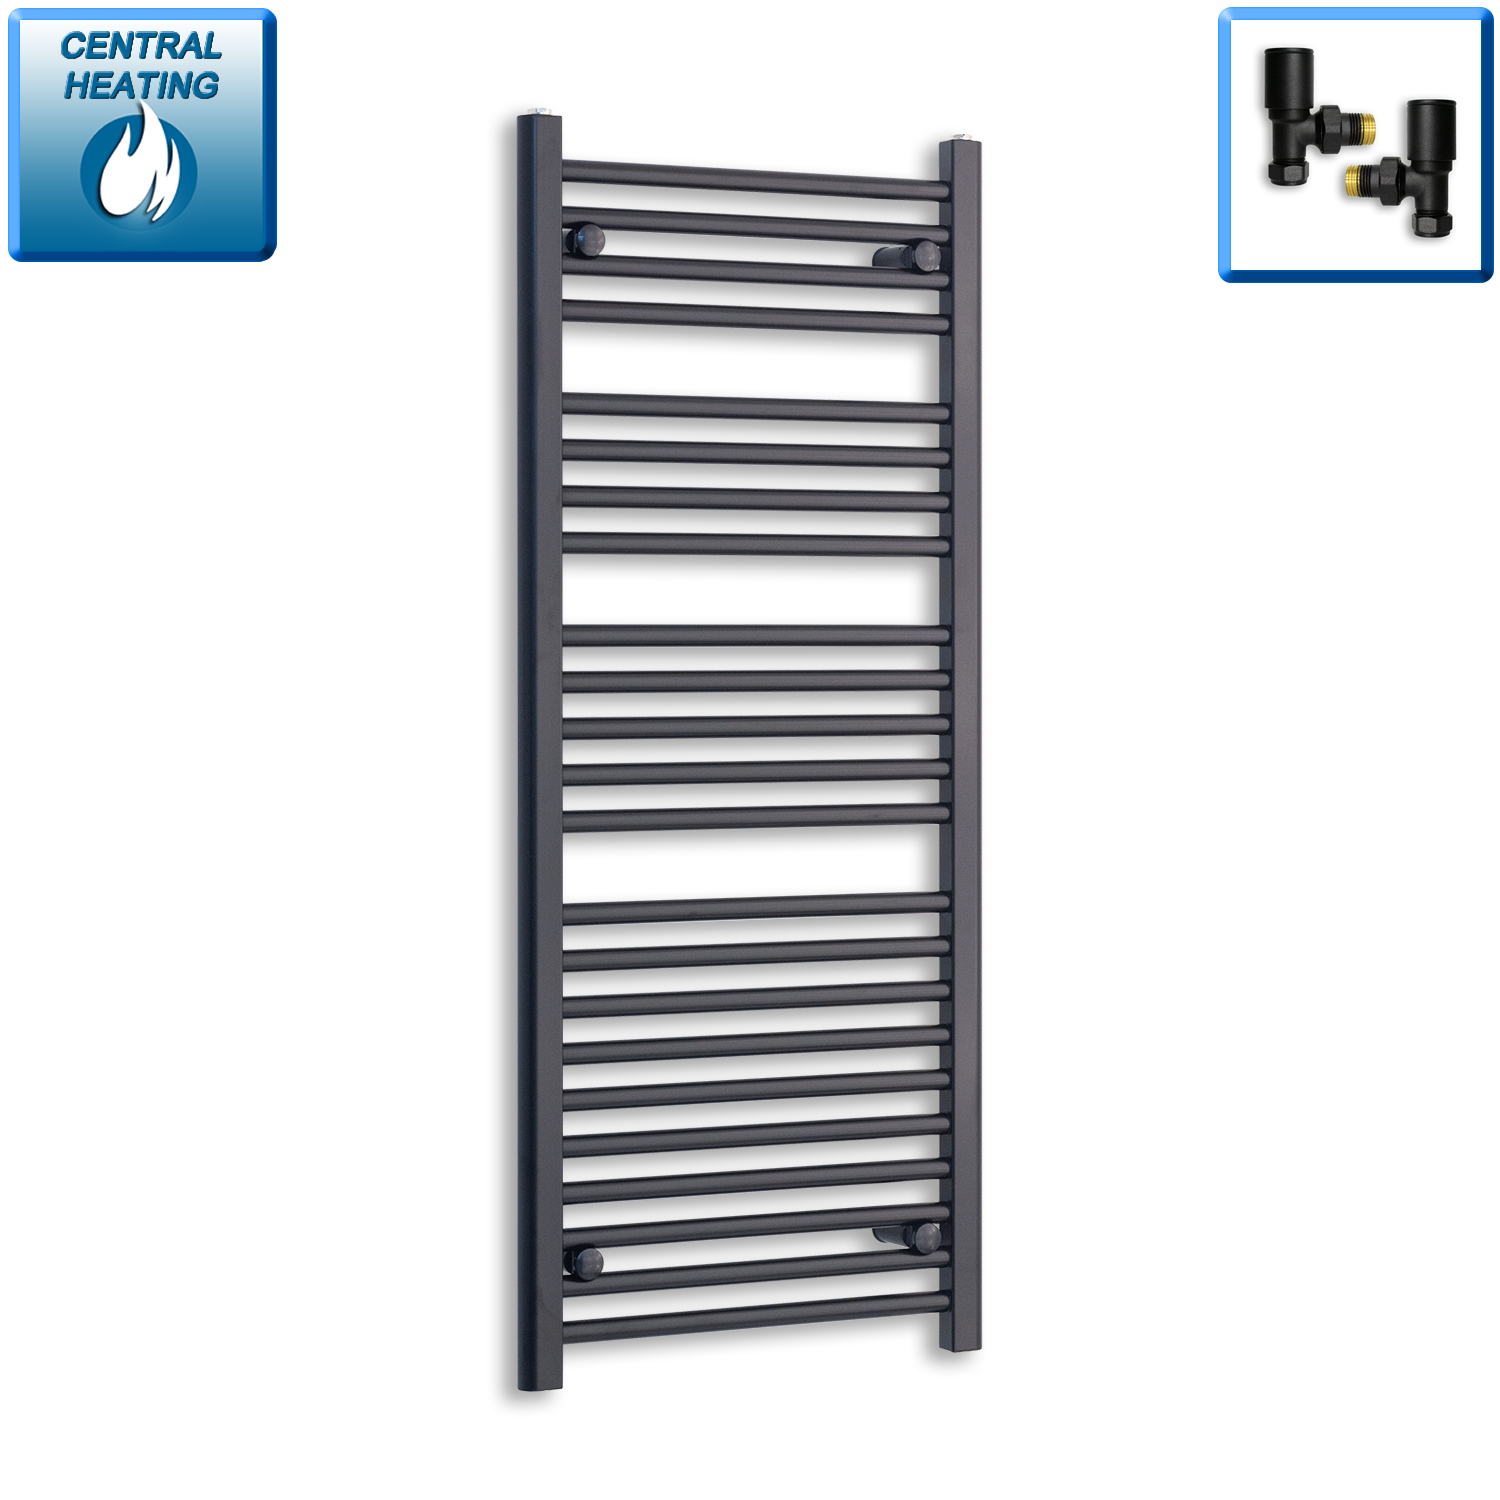 600mm Wide 1200mm High Black Towel Rail Radiator With Angled Valve.